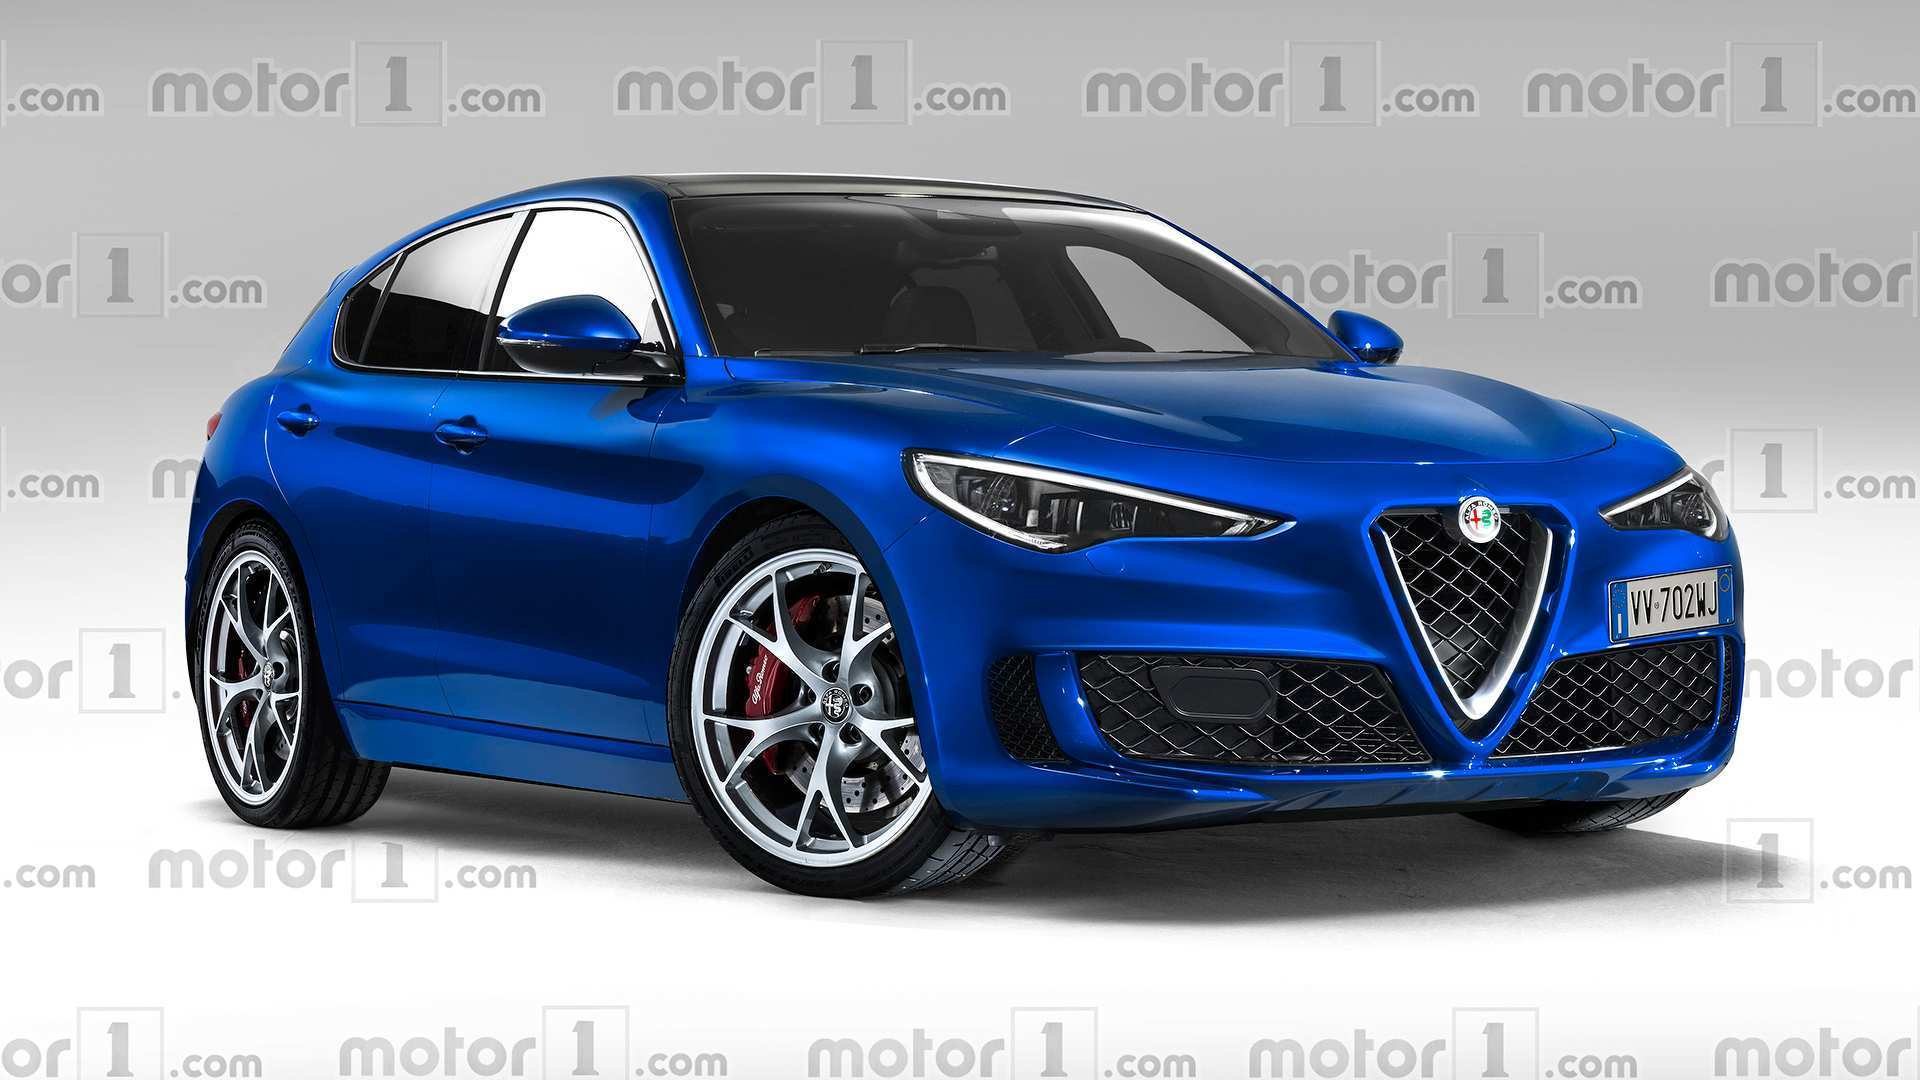 71 The Best 2019 Alfa Romeo Giulietta Concept And Review